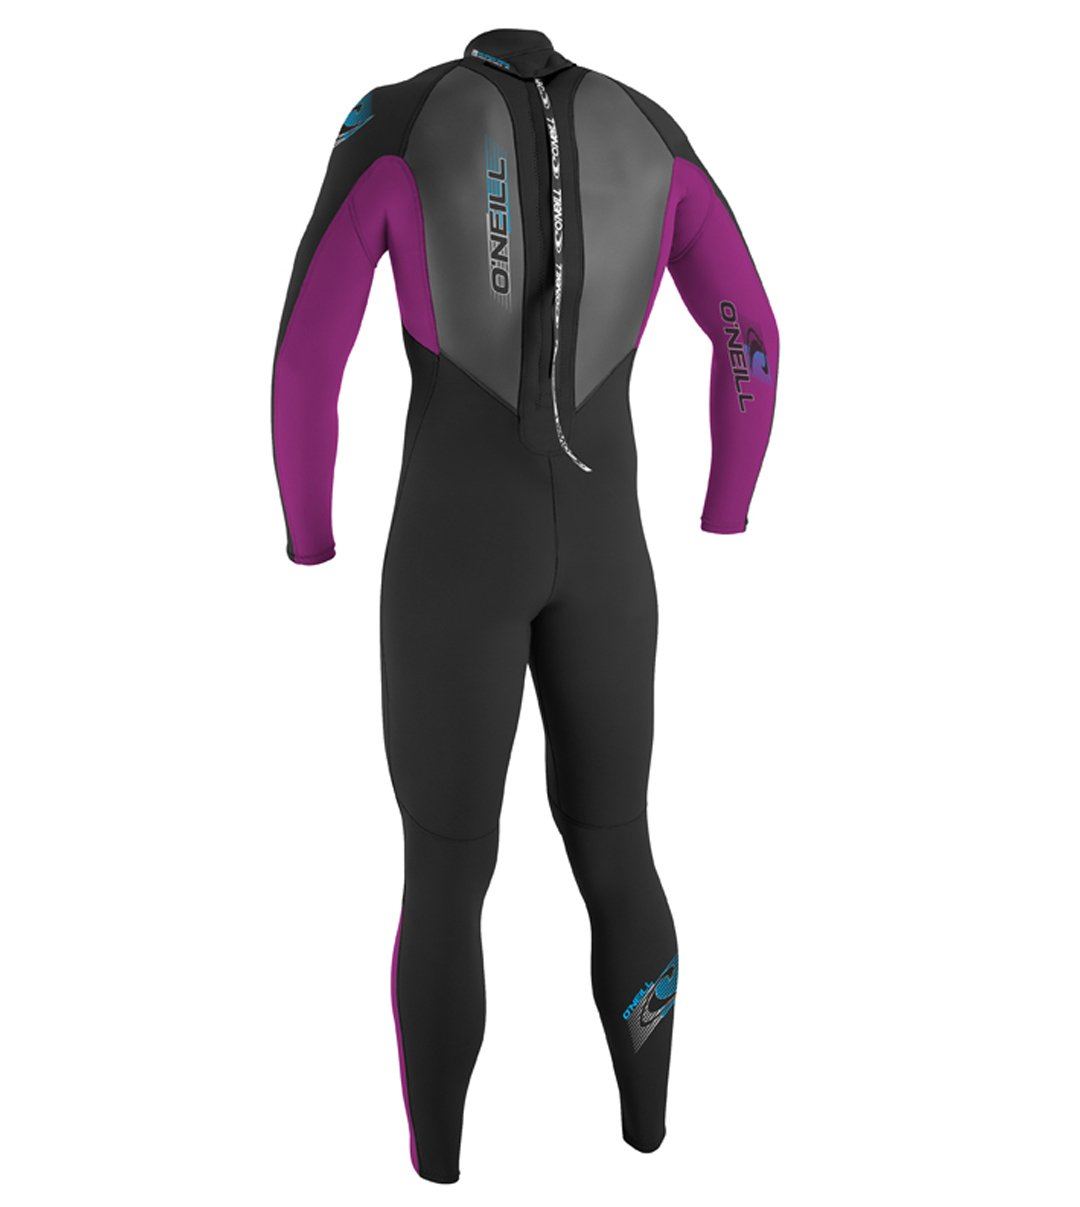 O'Neill Youth Reactor 3/2mm Back Zip Full Wetsuit, Black/Pink/Graphite, 8 by O'Neill Wetsuits (Image #2)